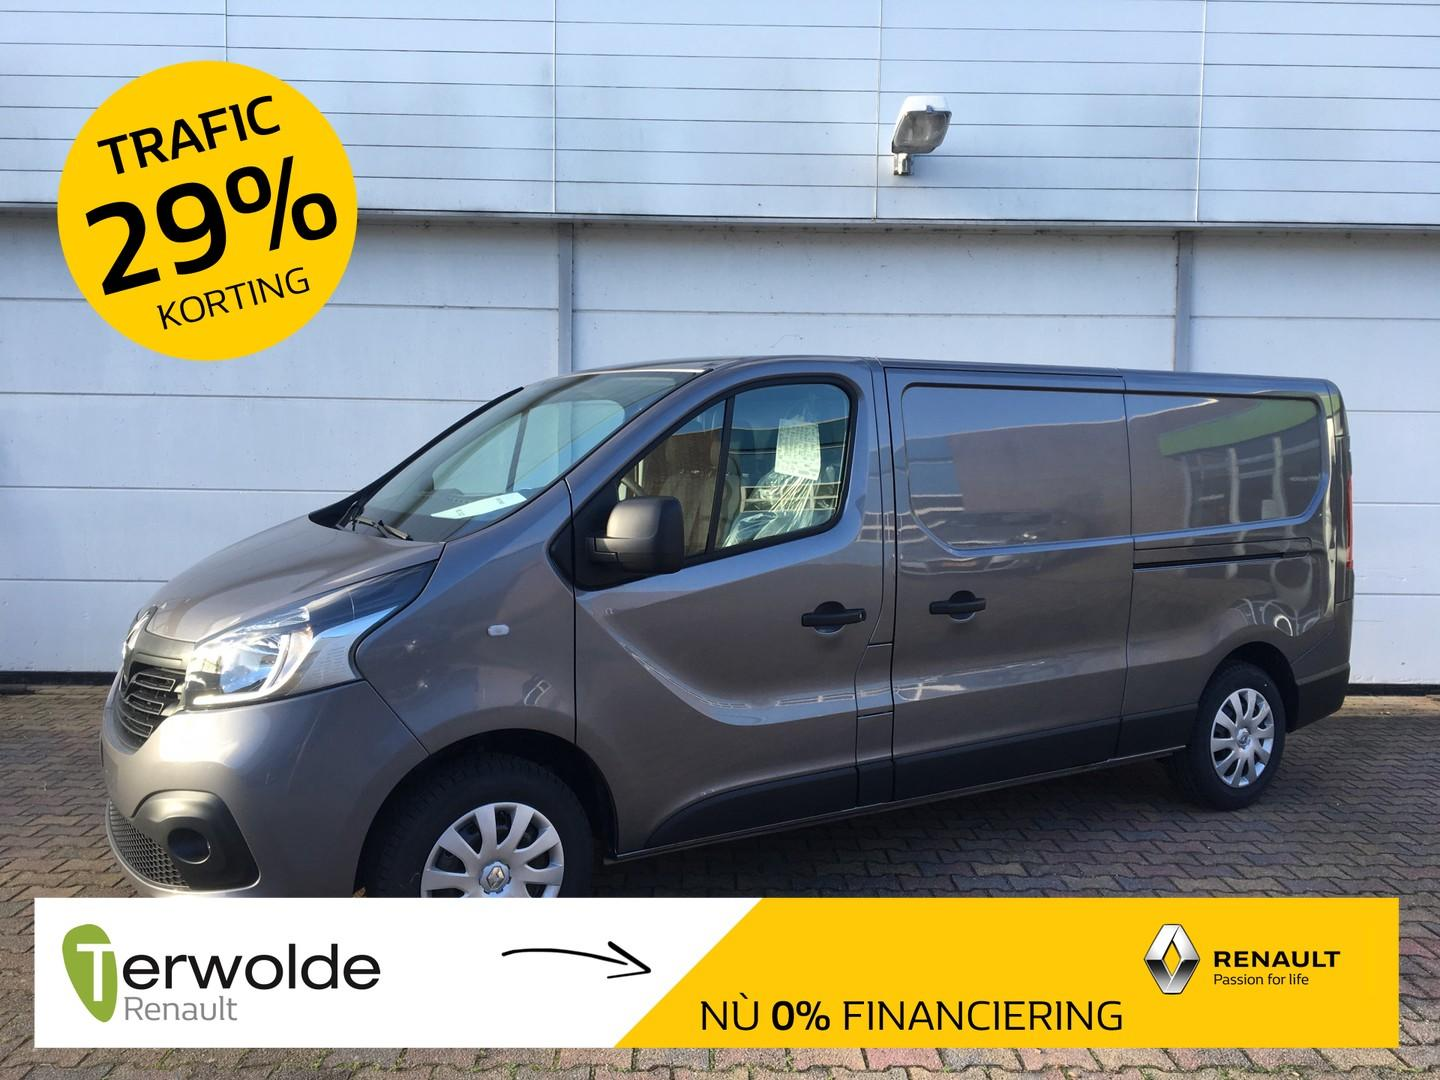 Renault Trafic 1.6 dci t29 l2h1 work edition energy 29% korting! financial lease 0% !